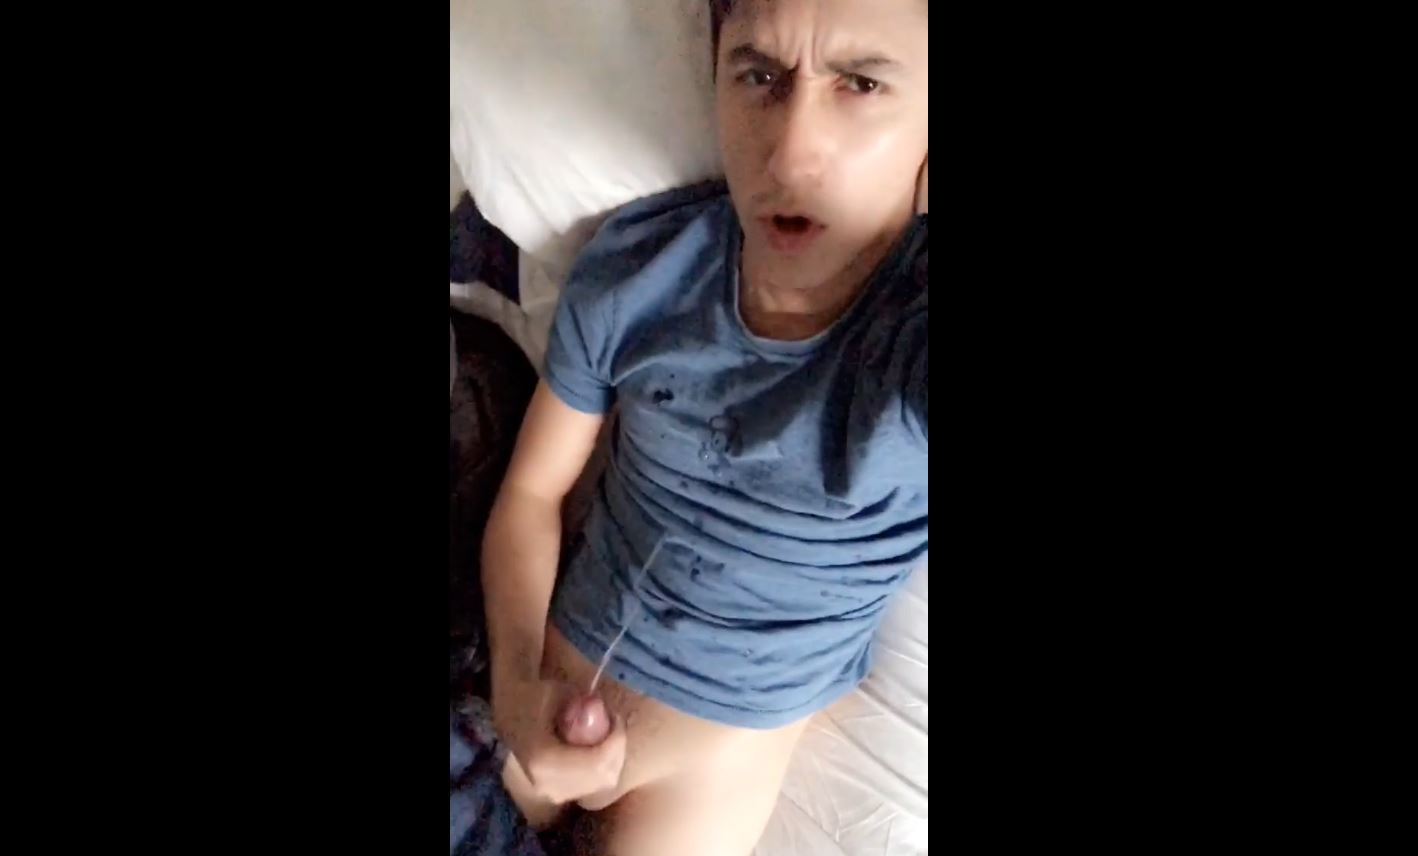 Diego shooting a big load over himself - Diegoleverkusen